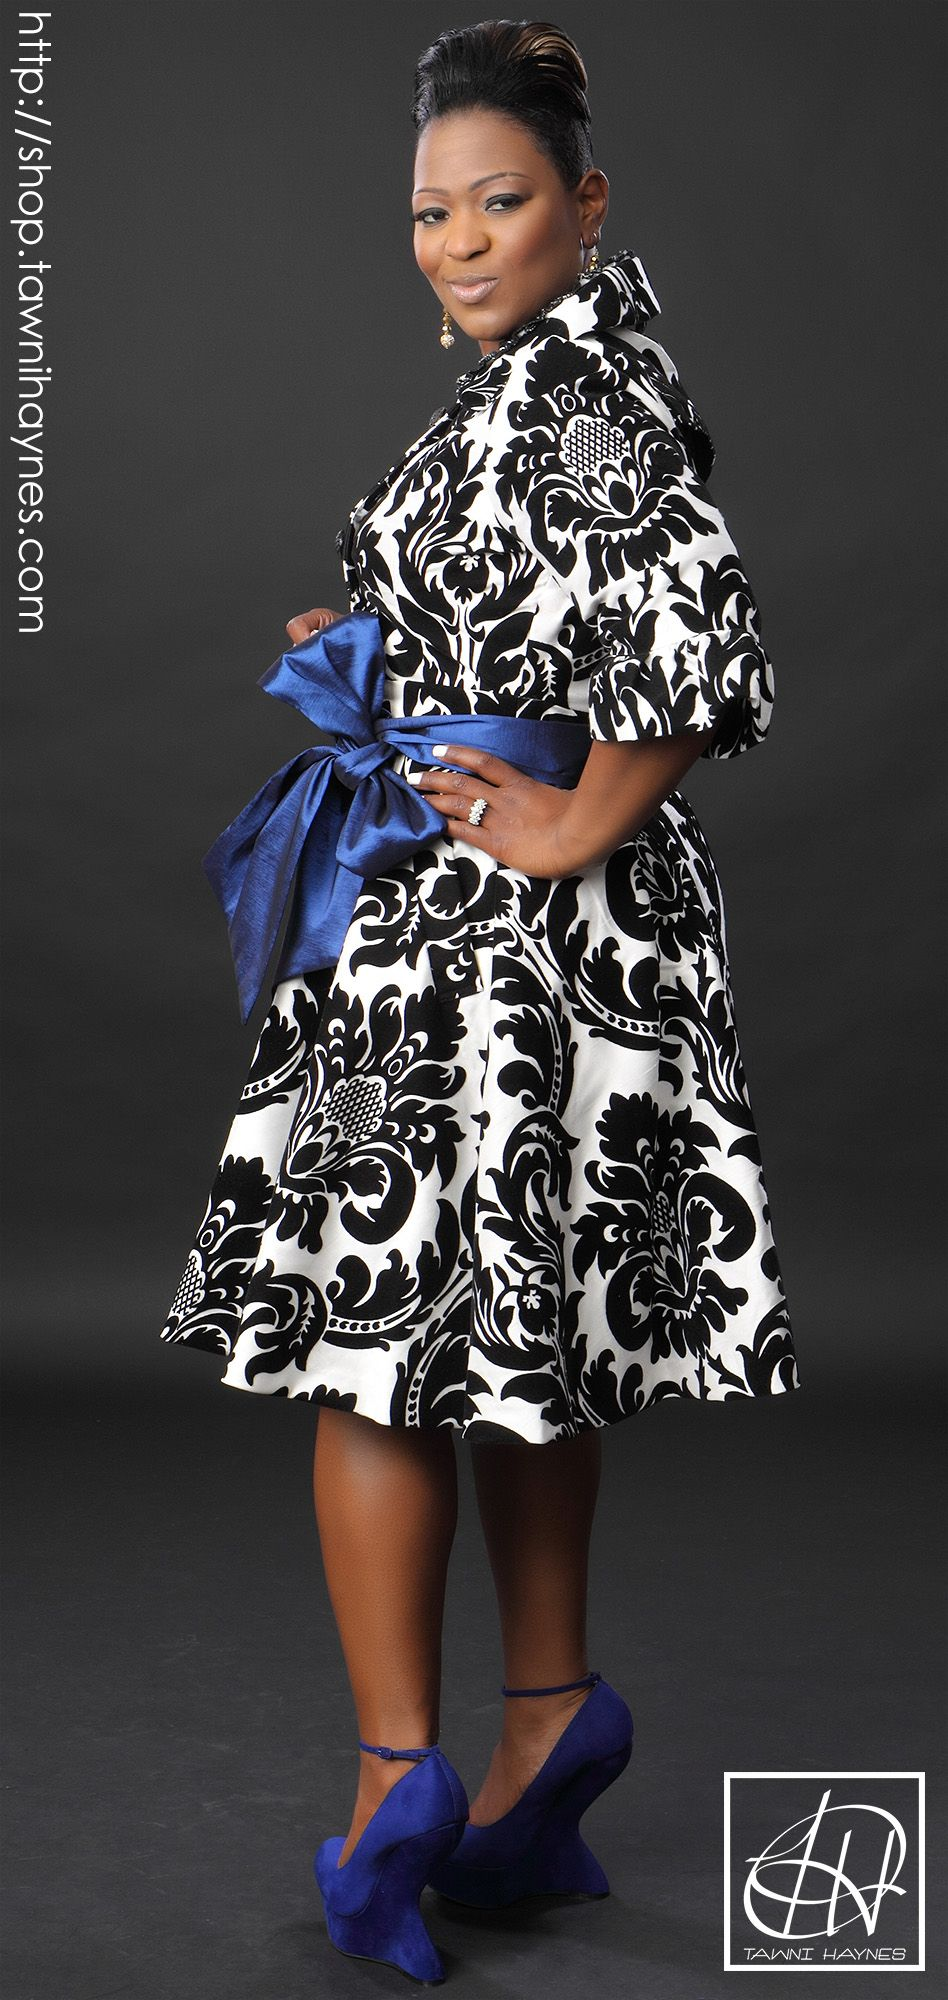 d3498b1ce7f Tawni Haynes Trench Dress with additional belts in the color of your  choice! Order   shop.tawnihaynes.com or call 972-754-5096.